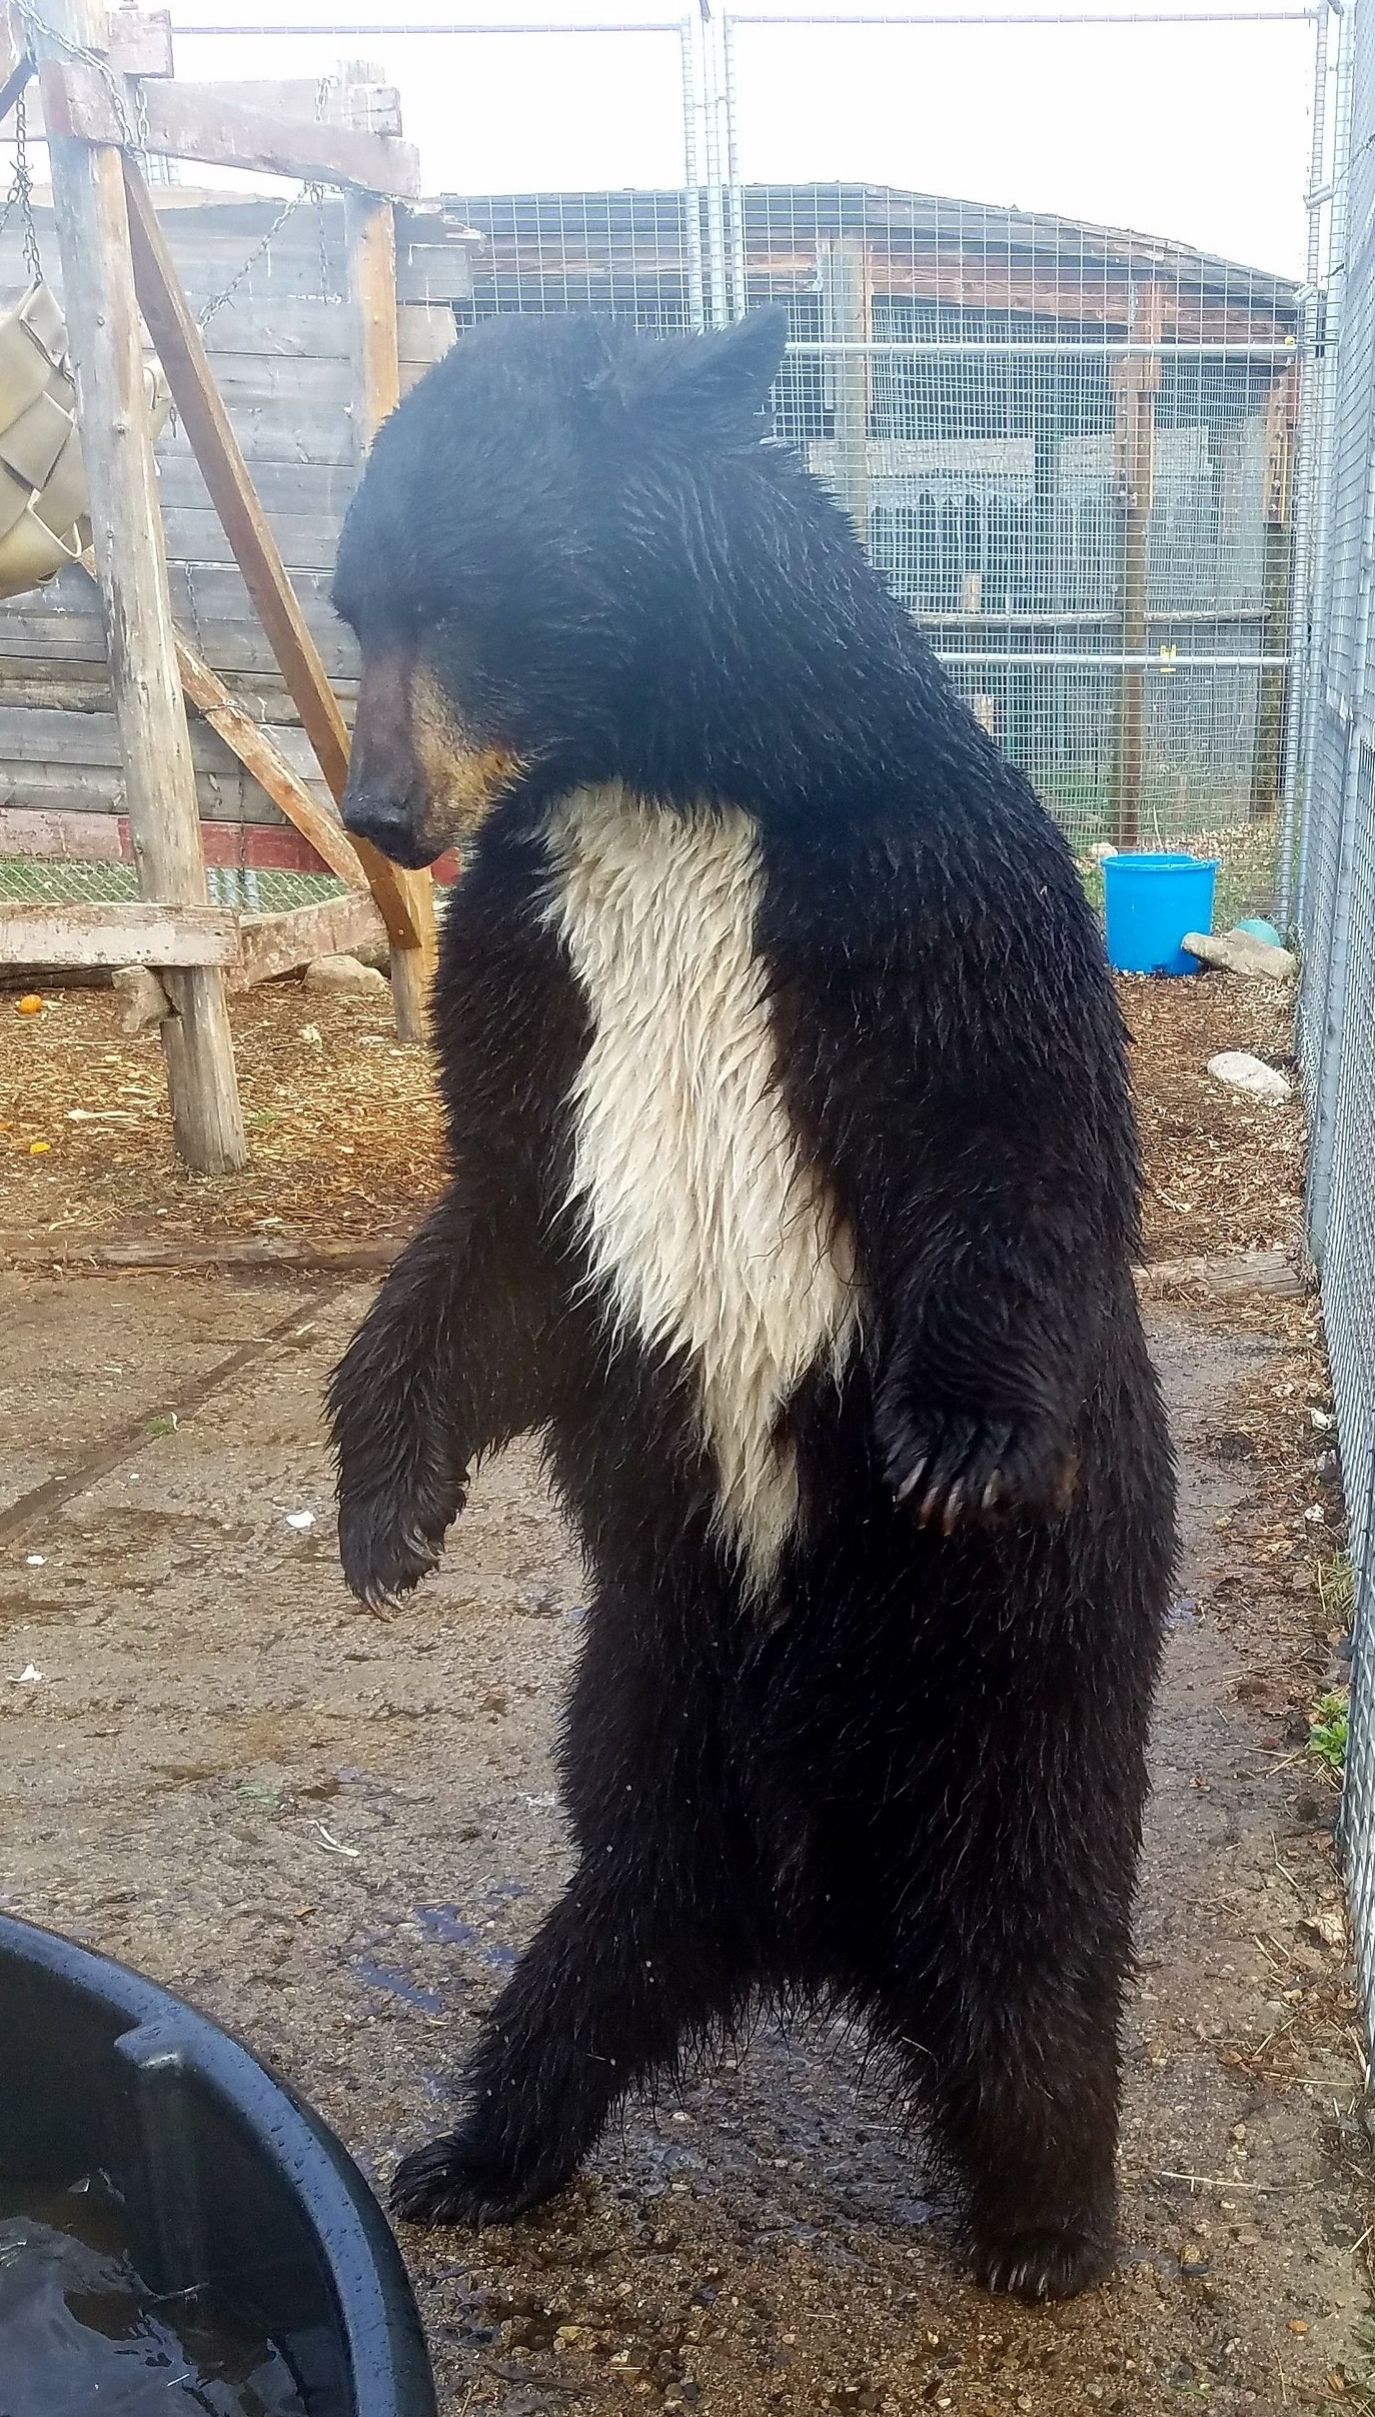 BlueBeary is one of our  black bears . She loves water, and she just finished splashing around in her pool.